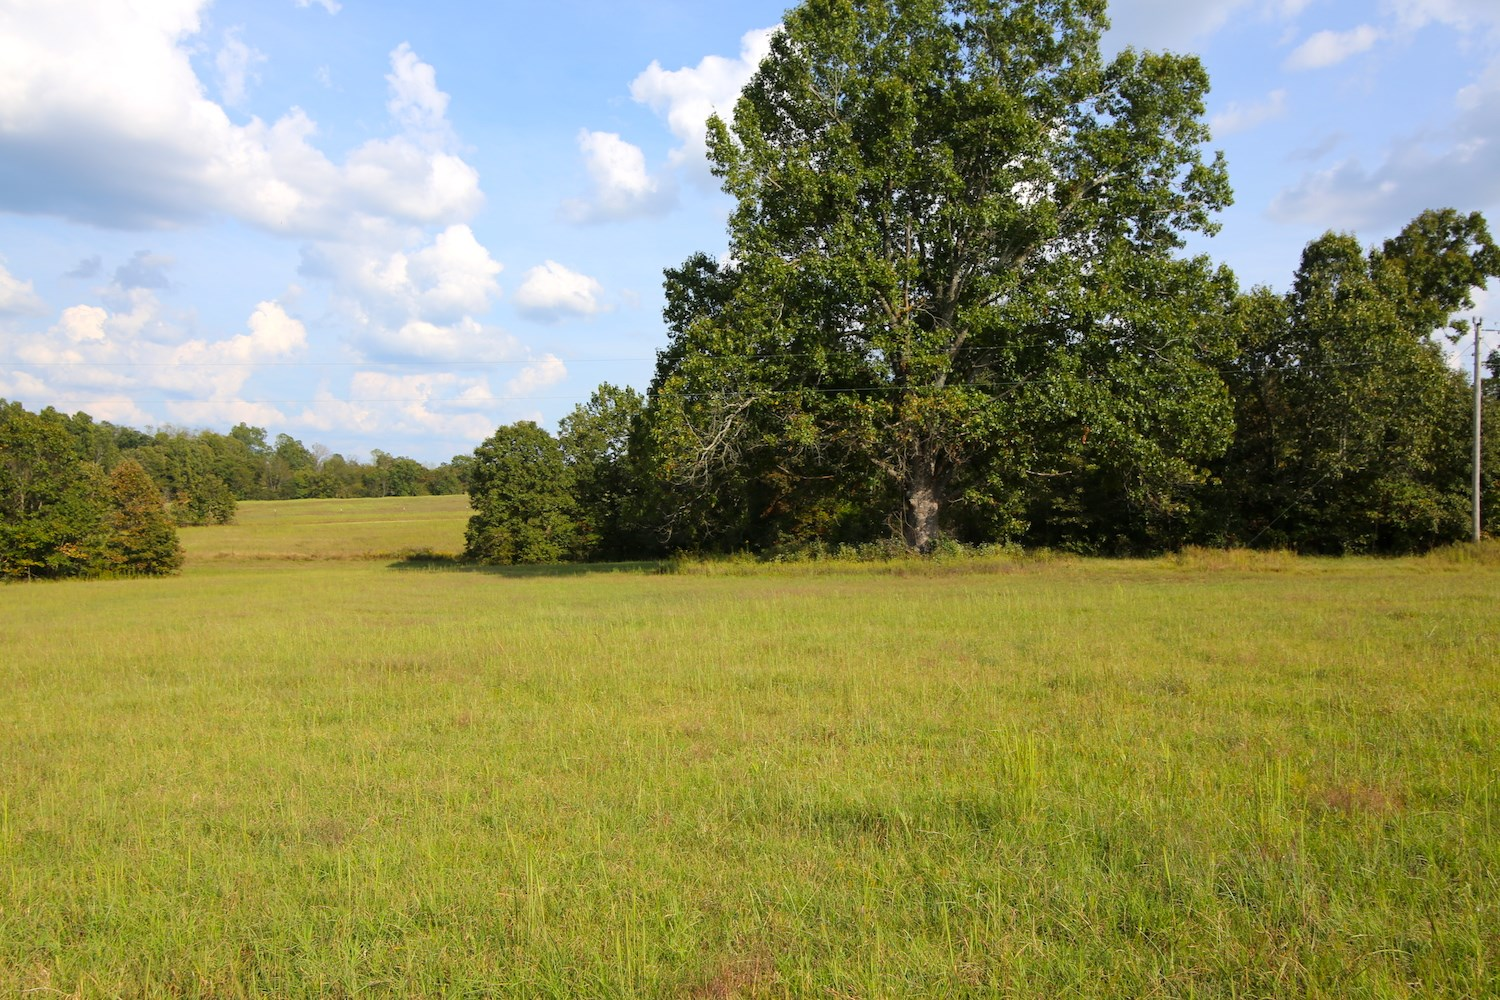 Vacant Land W/ Hay Fields & Marketable Timber For Sale in MO